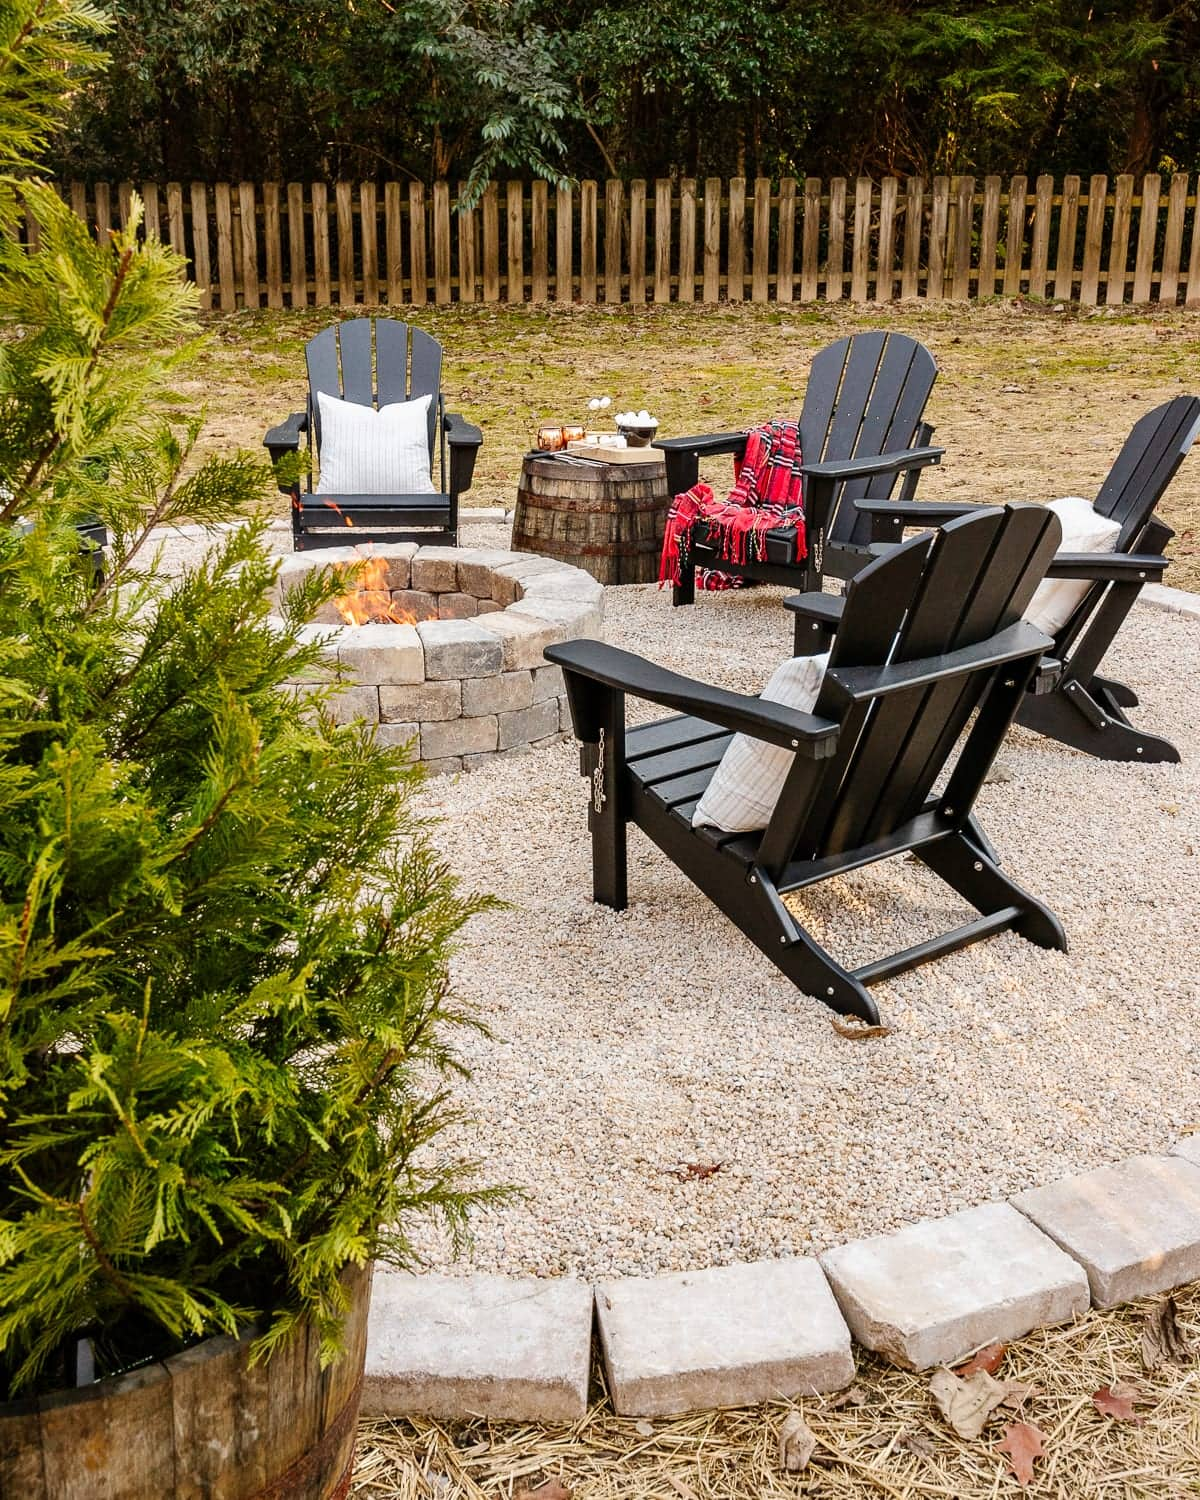 diy backyard fire pit with pea gravel, stone edgers, and adirondack chairs